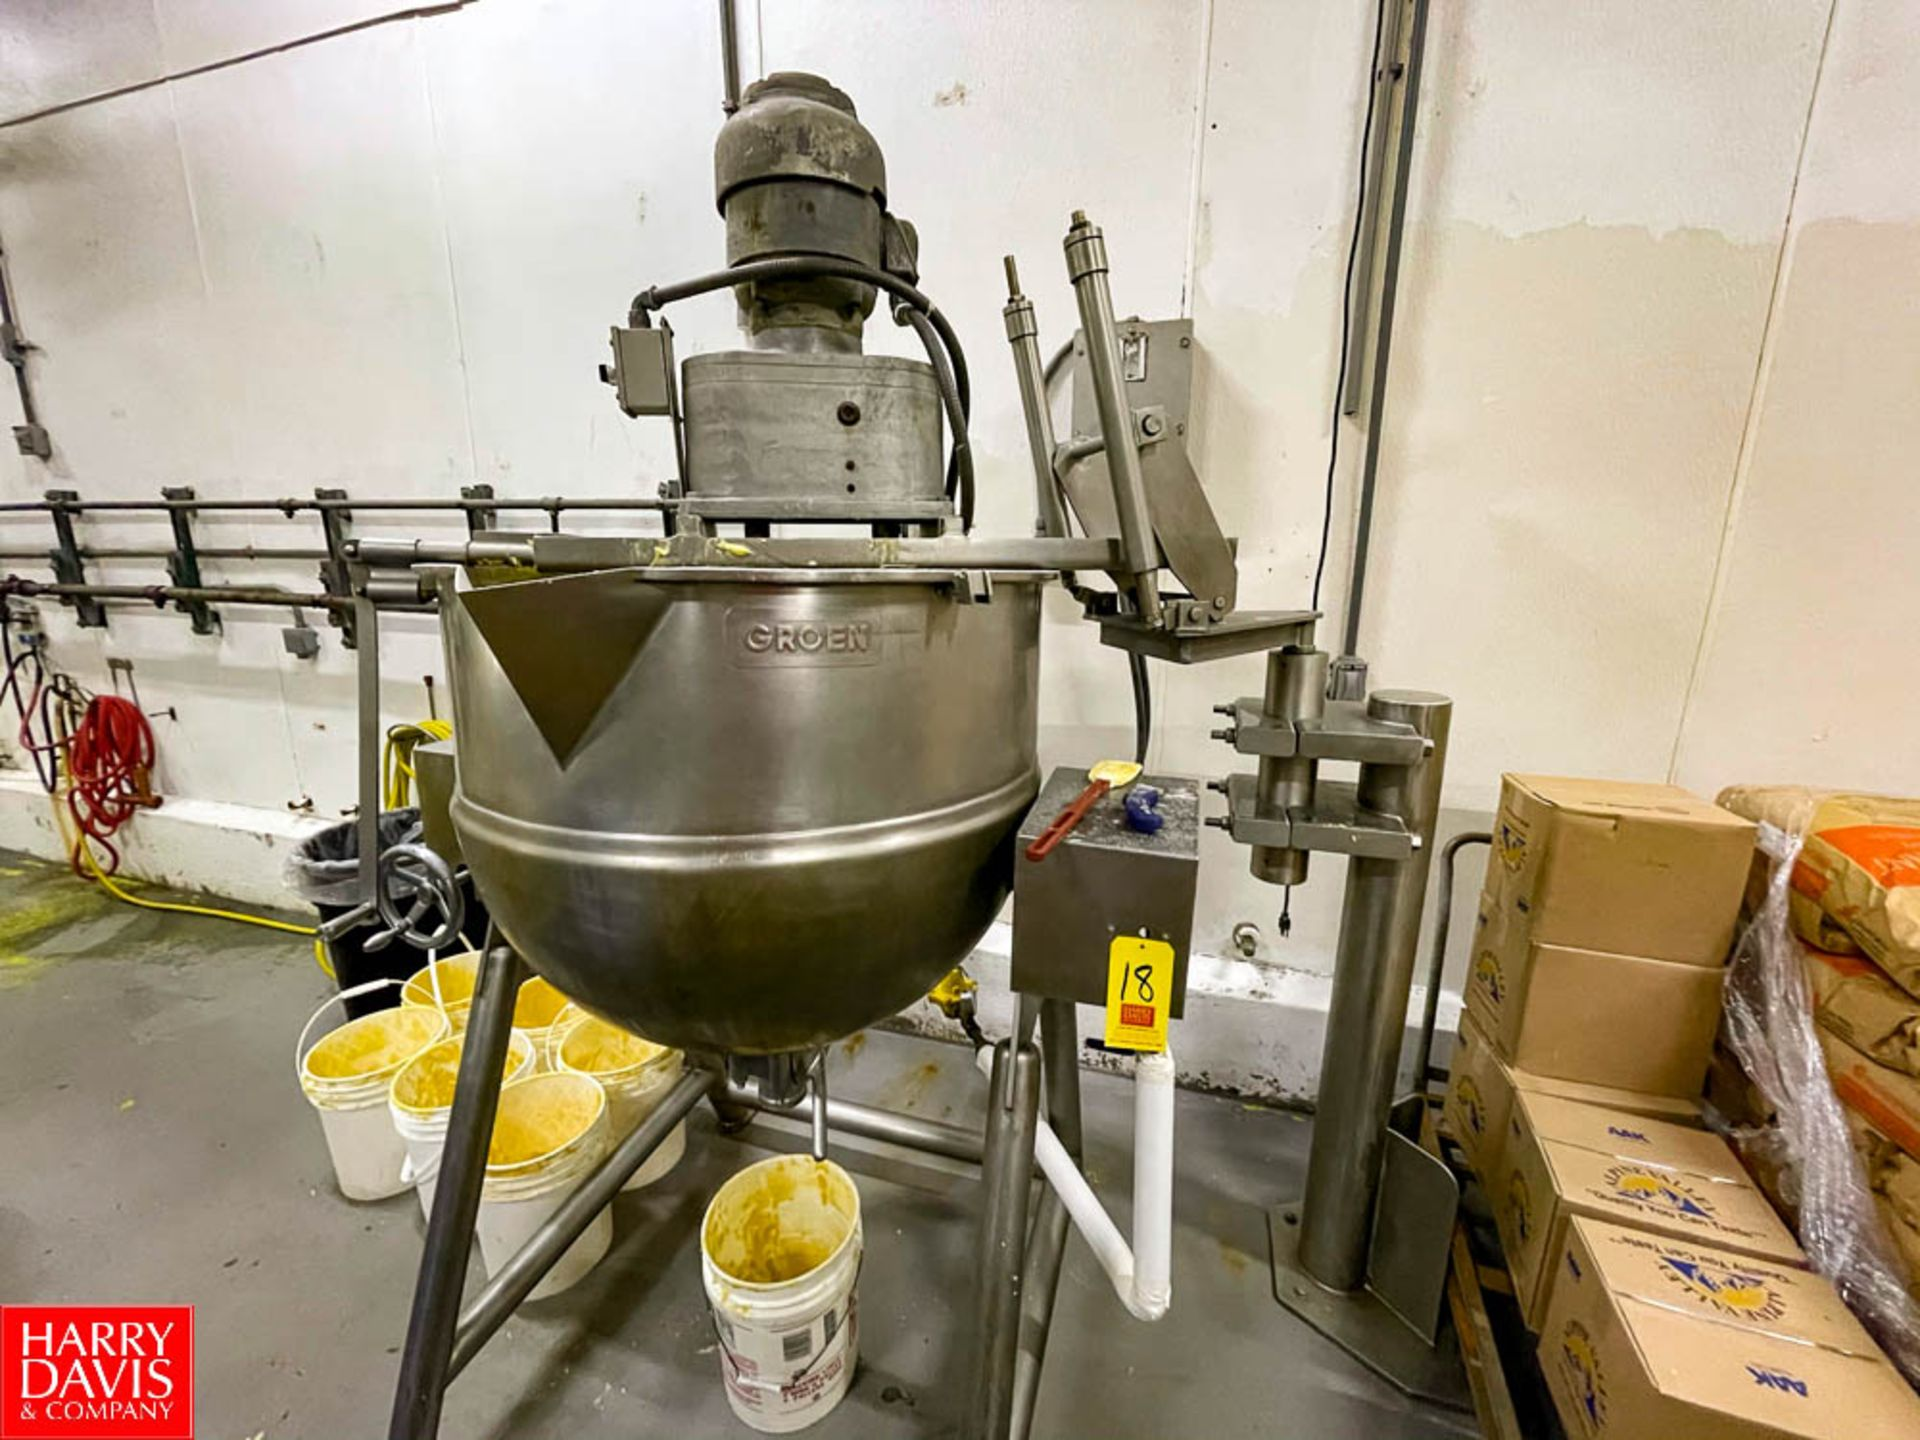 Groen 100 Gallon S/S Jacketed Tilting Kettle Model: MW/DTA-100-100 with Vertical Agitation. Rigging - Image 3 of 3